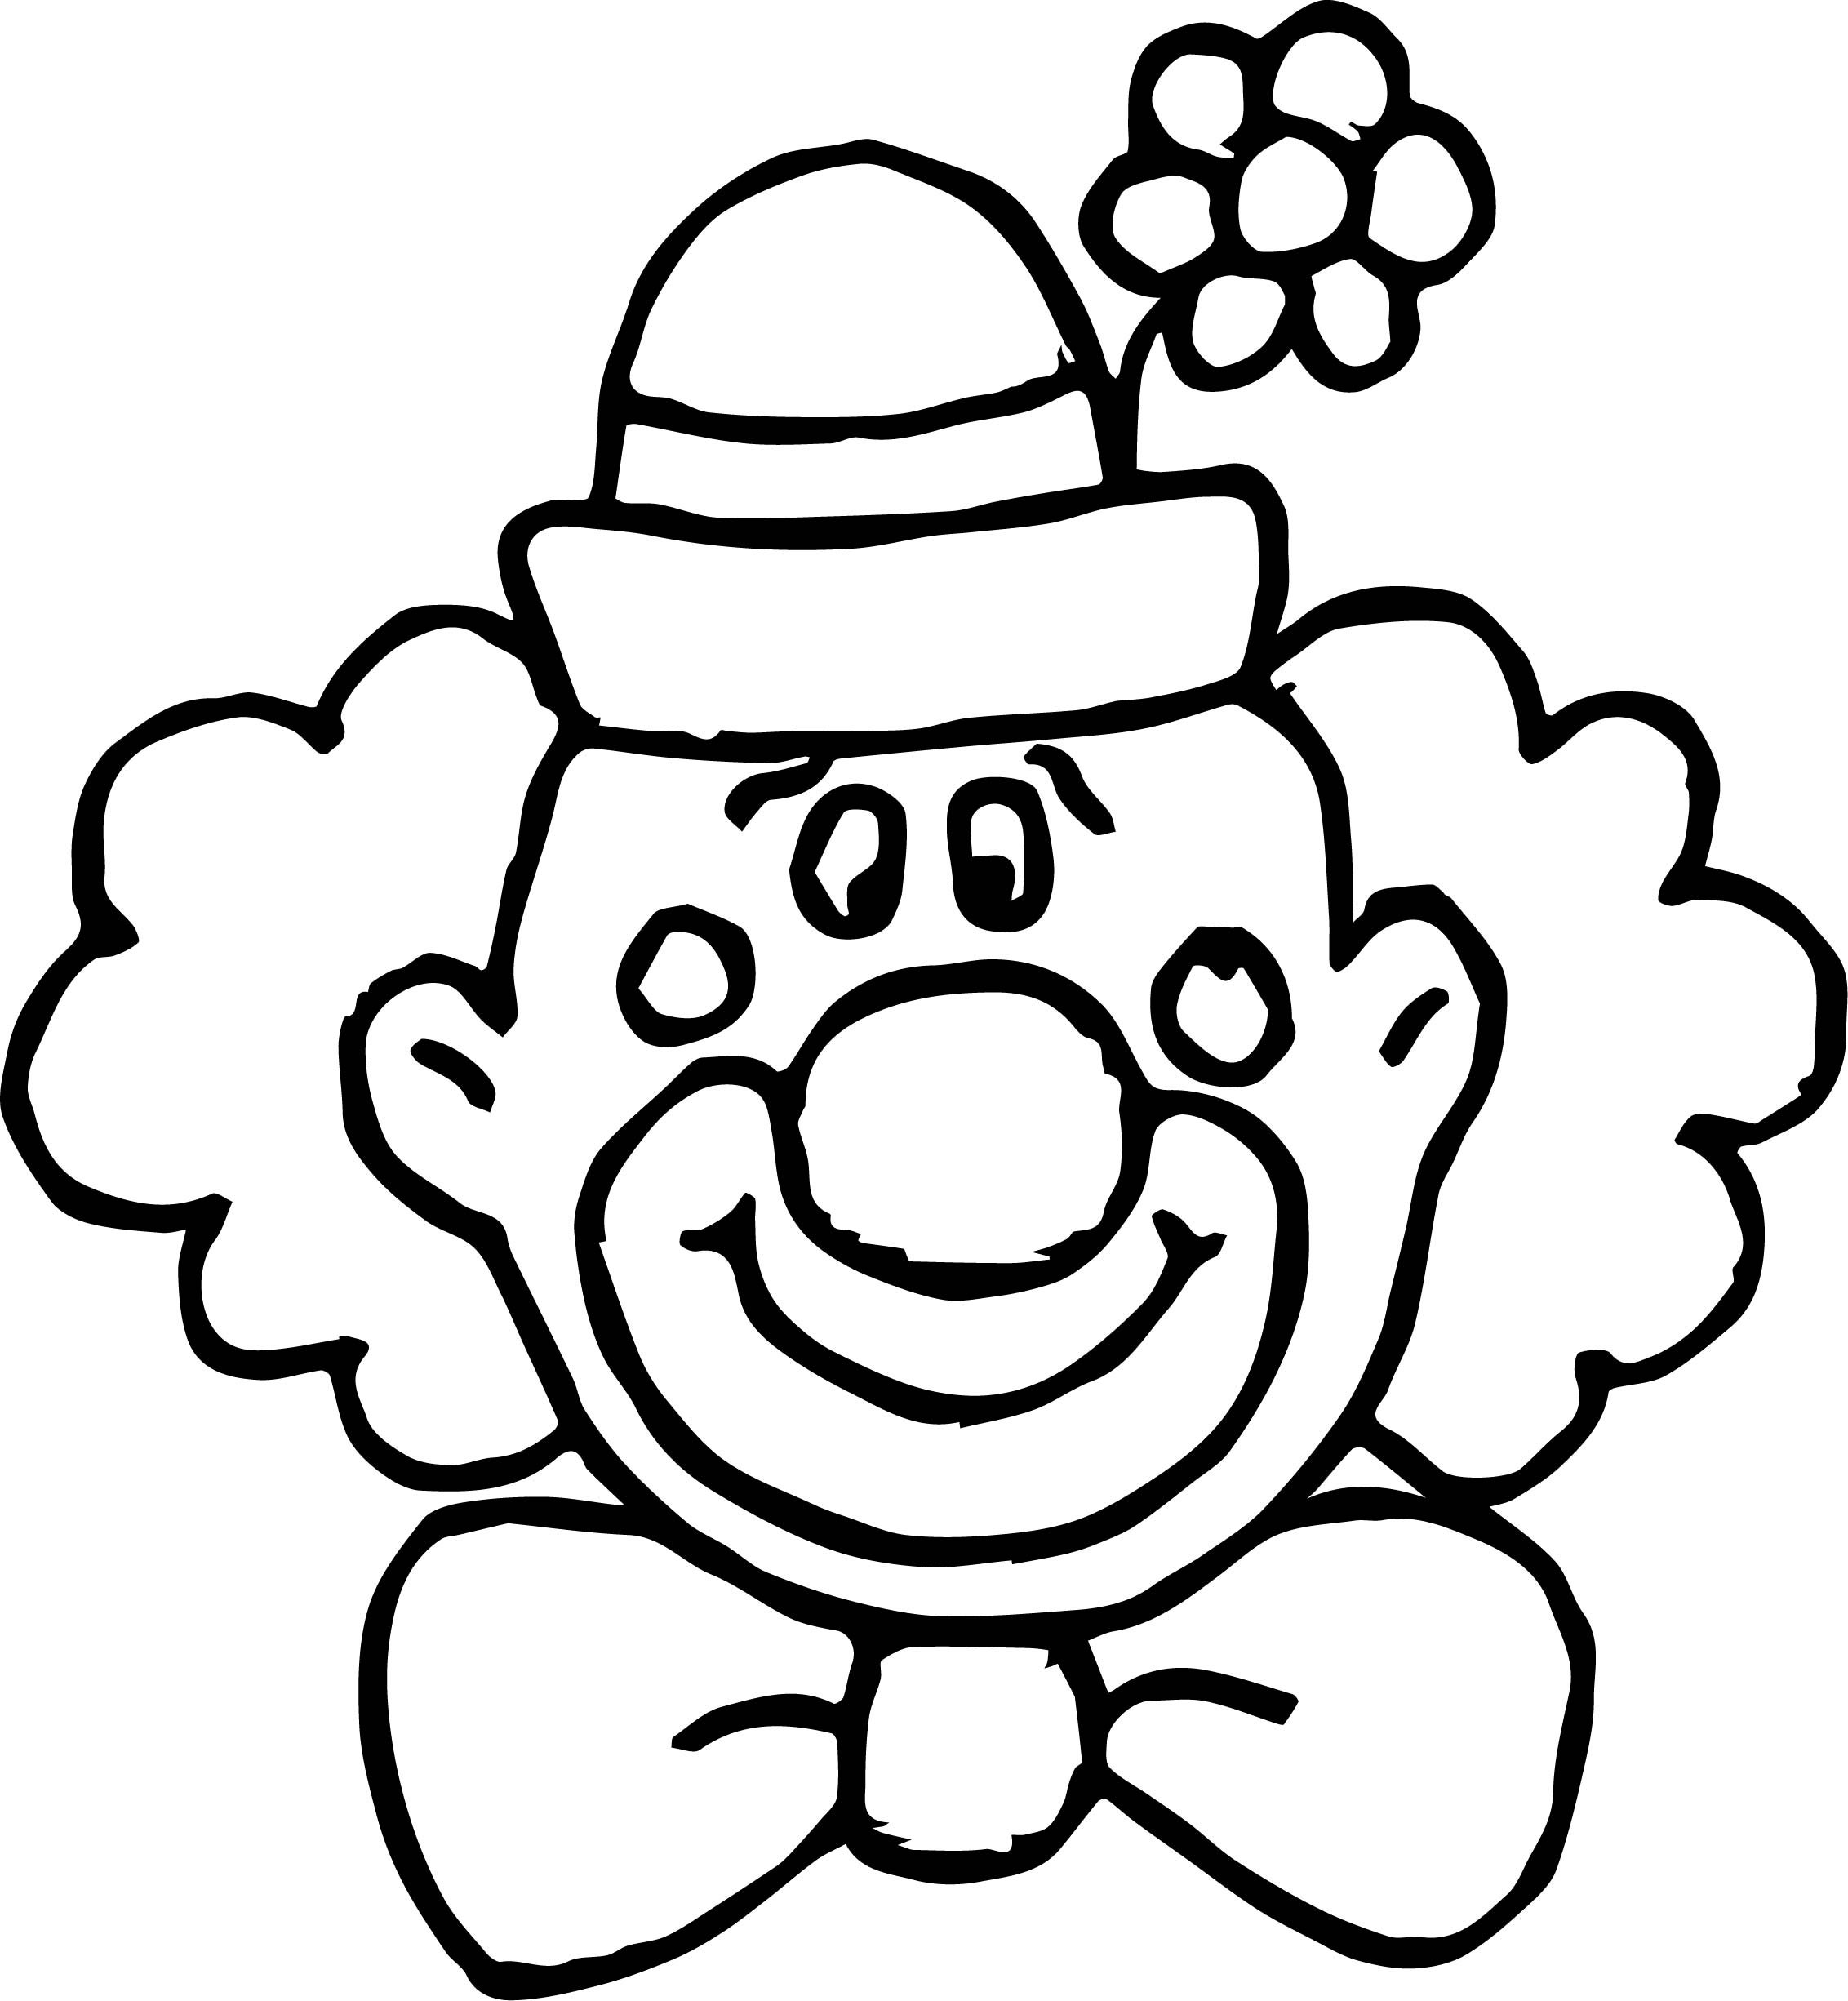 Flower Clown Face Coloring Page Wecoloringpage